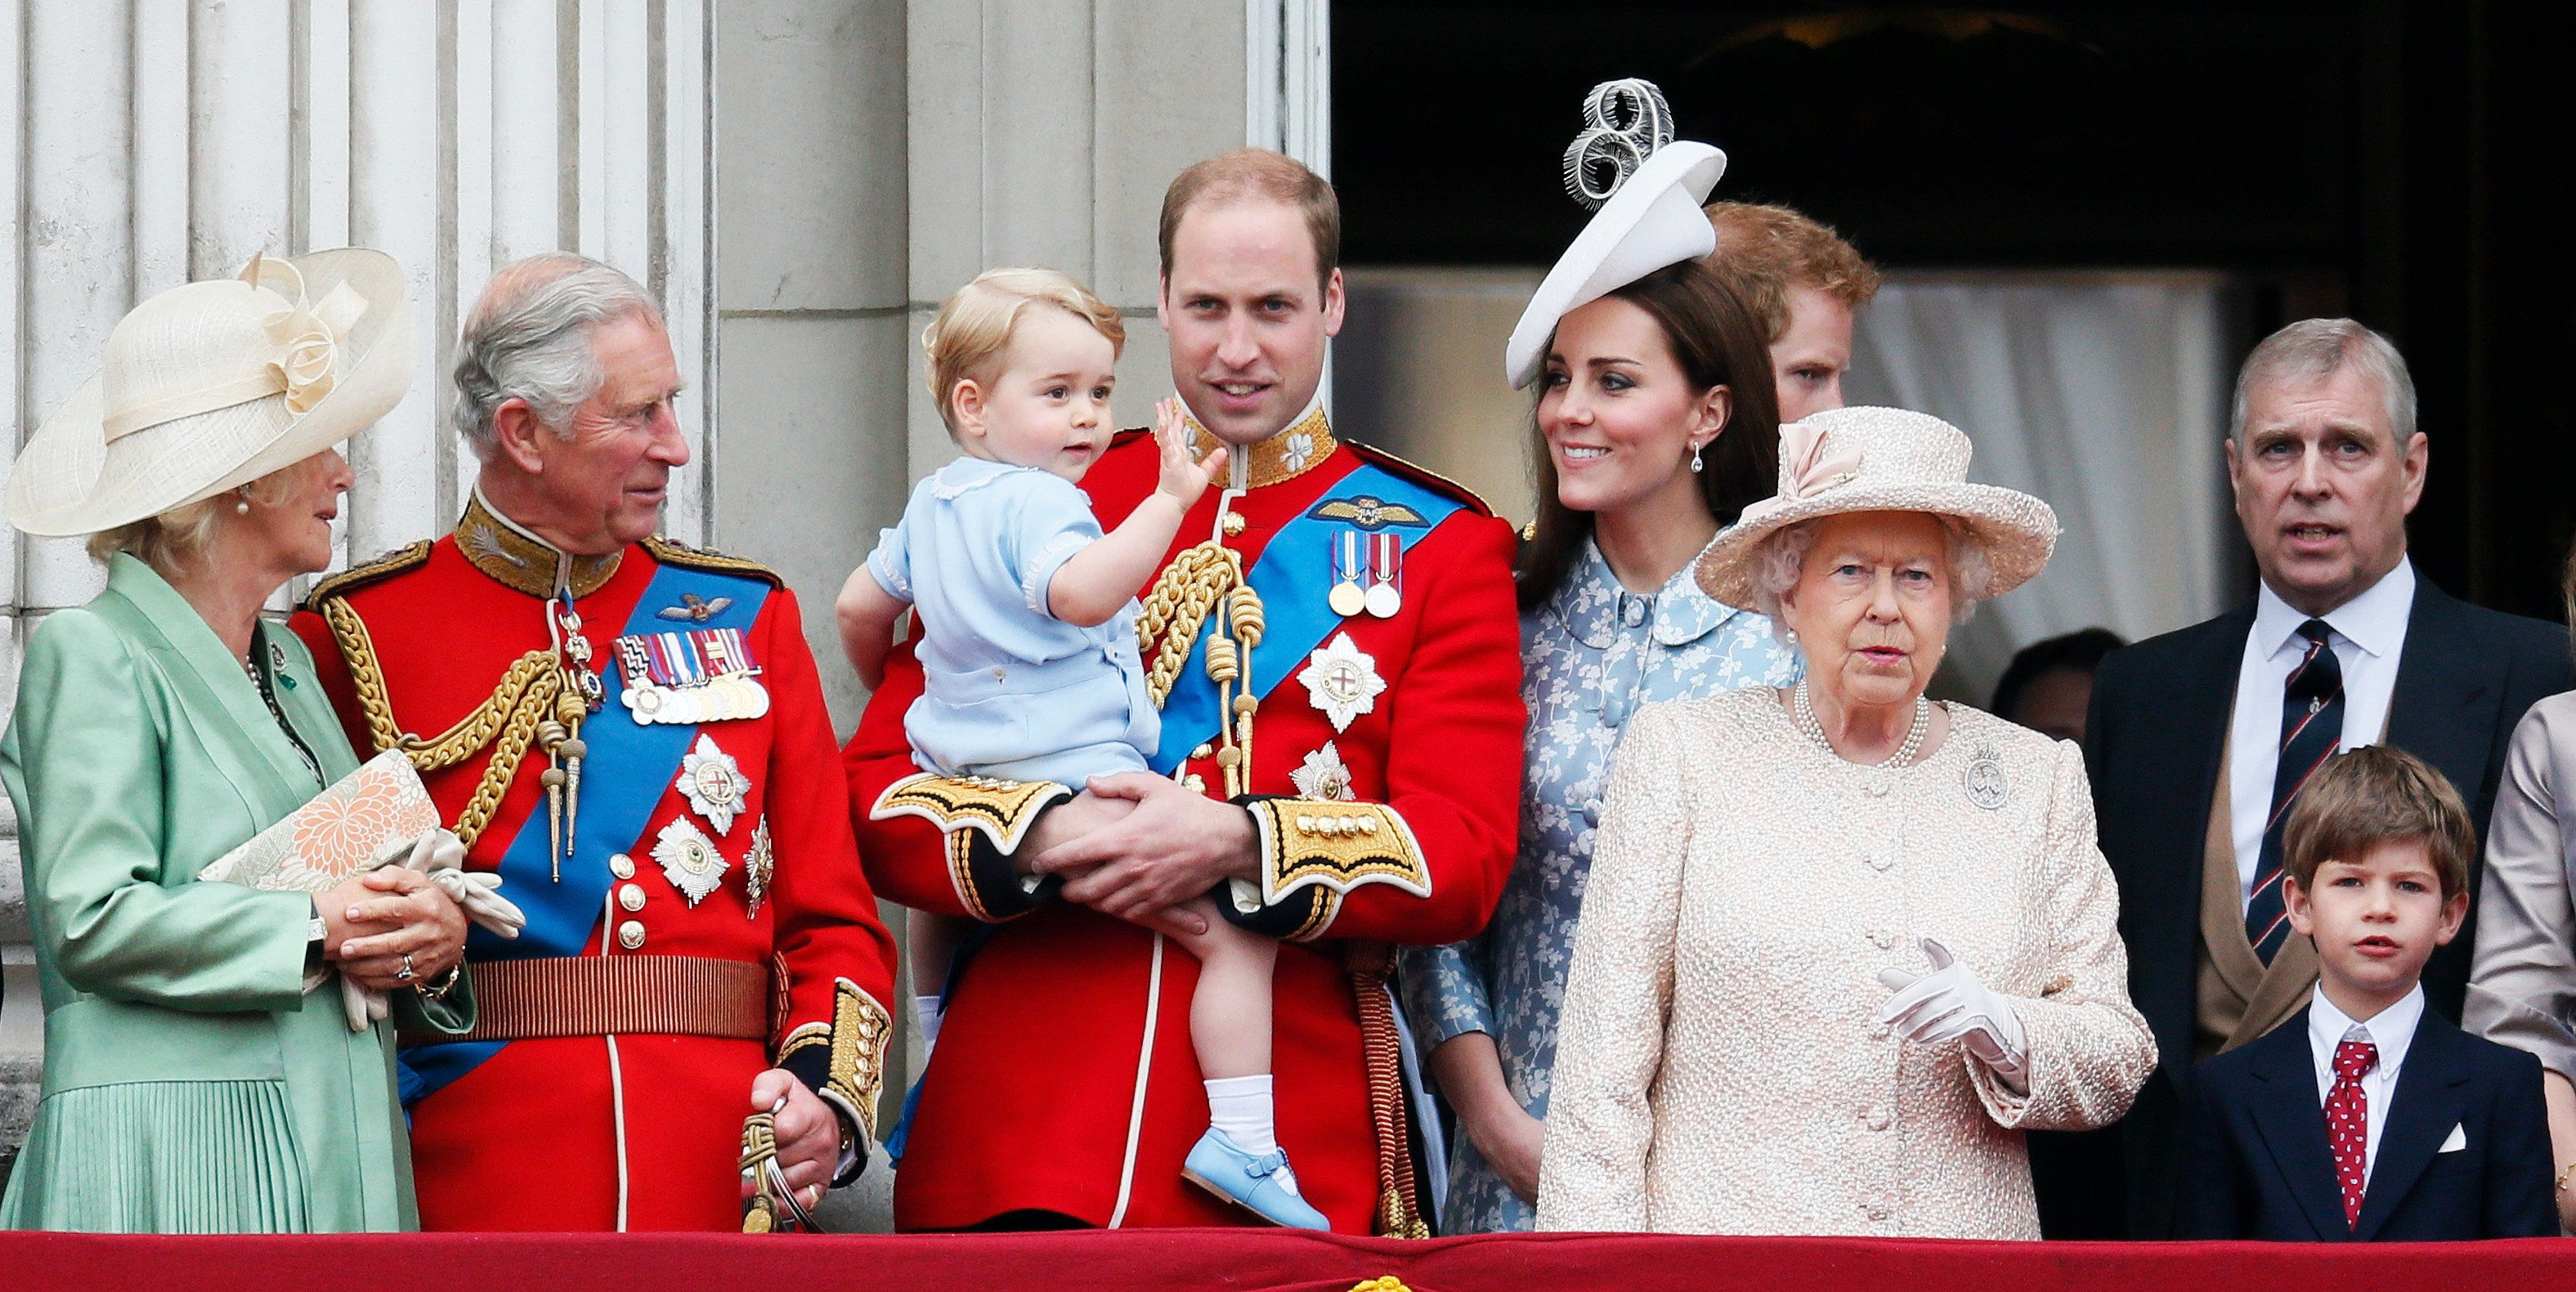 Britain's (L-R) Camilla The Duchess of Cornwall, Prince Charles, Prince Willian holding Prince George, Catherine, the Duchess of Cambridge, Queen Elizabeth, and Prince Andrew stand on the balcony at Buckingham Palace after attending the Trooping the Colour ceremony at Horse Guards Parade in central London, Britain June 13, 2015. Trooping the Colour is a ceremony to honour the Queen's official birthday.   REUTERS/Stefan Wermuth TPX IMAGES OF THE DAY